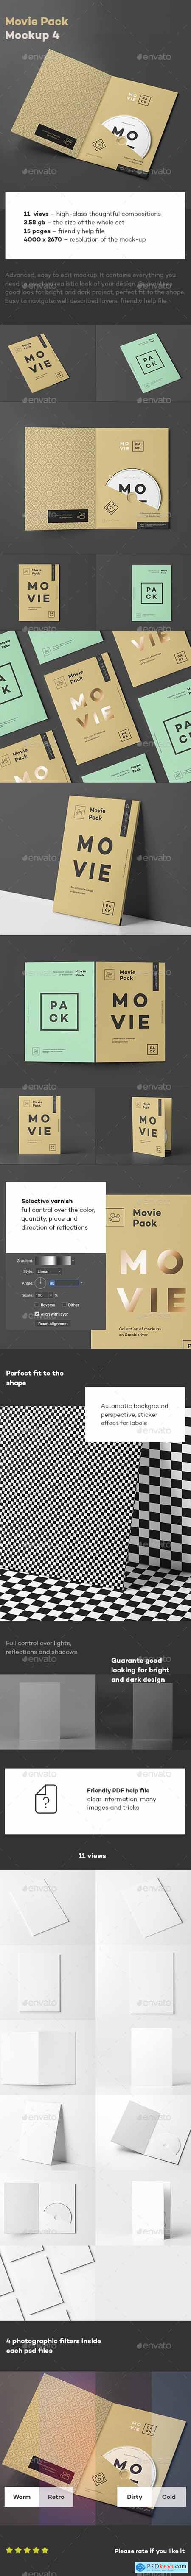 Movie Pack Mock-up 4 24379882